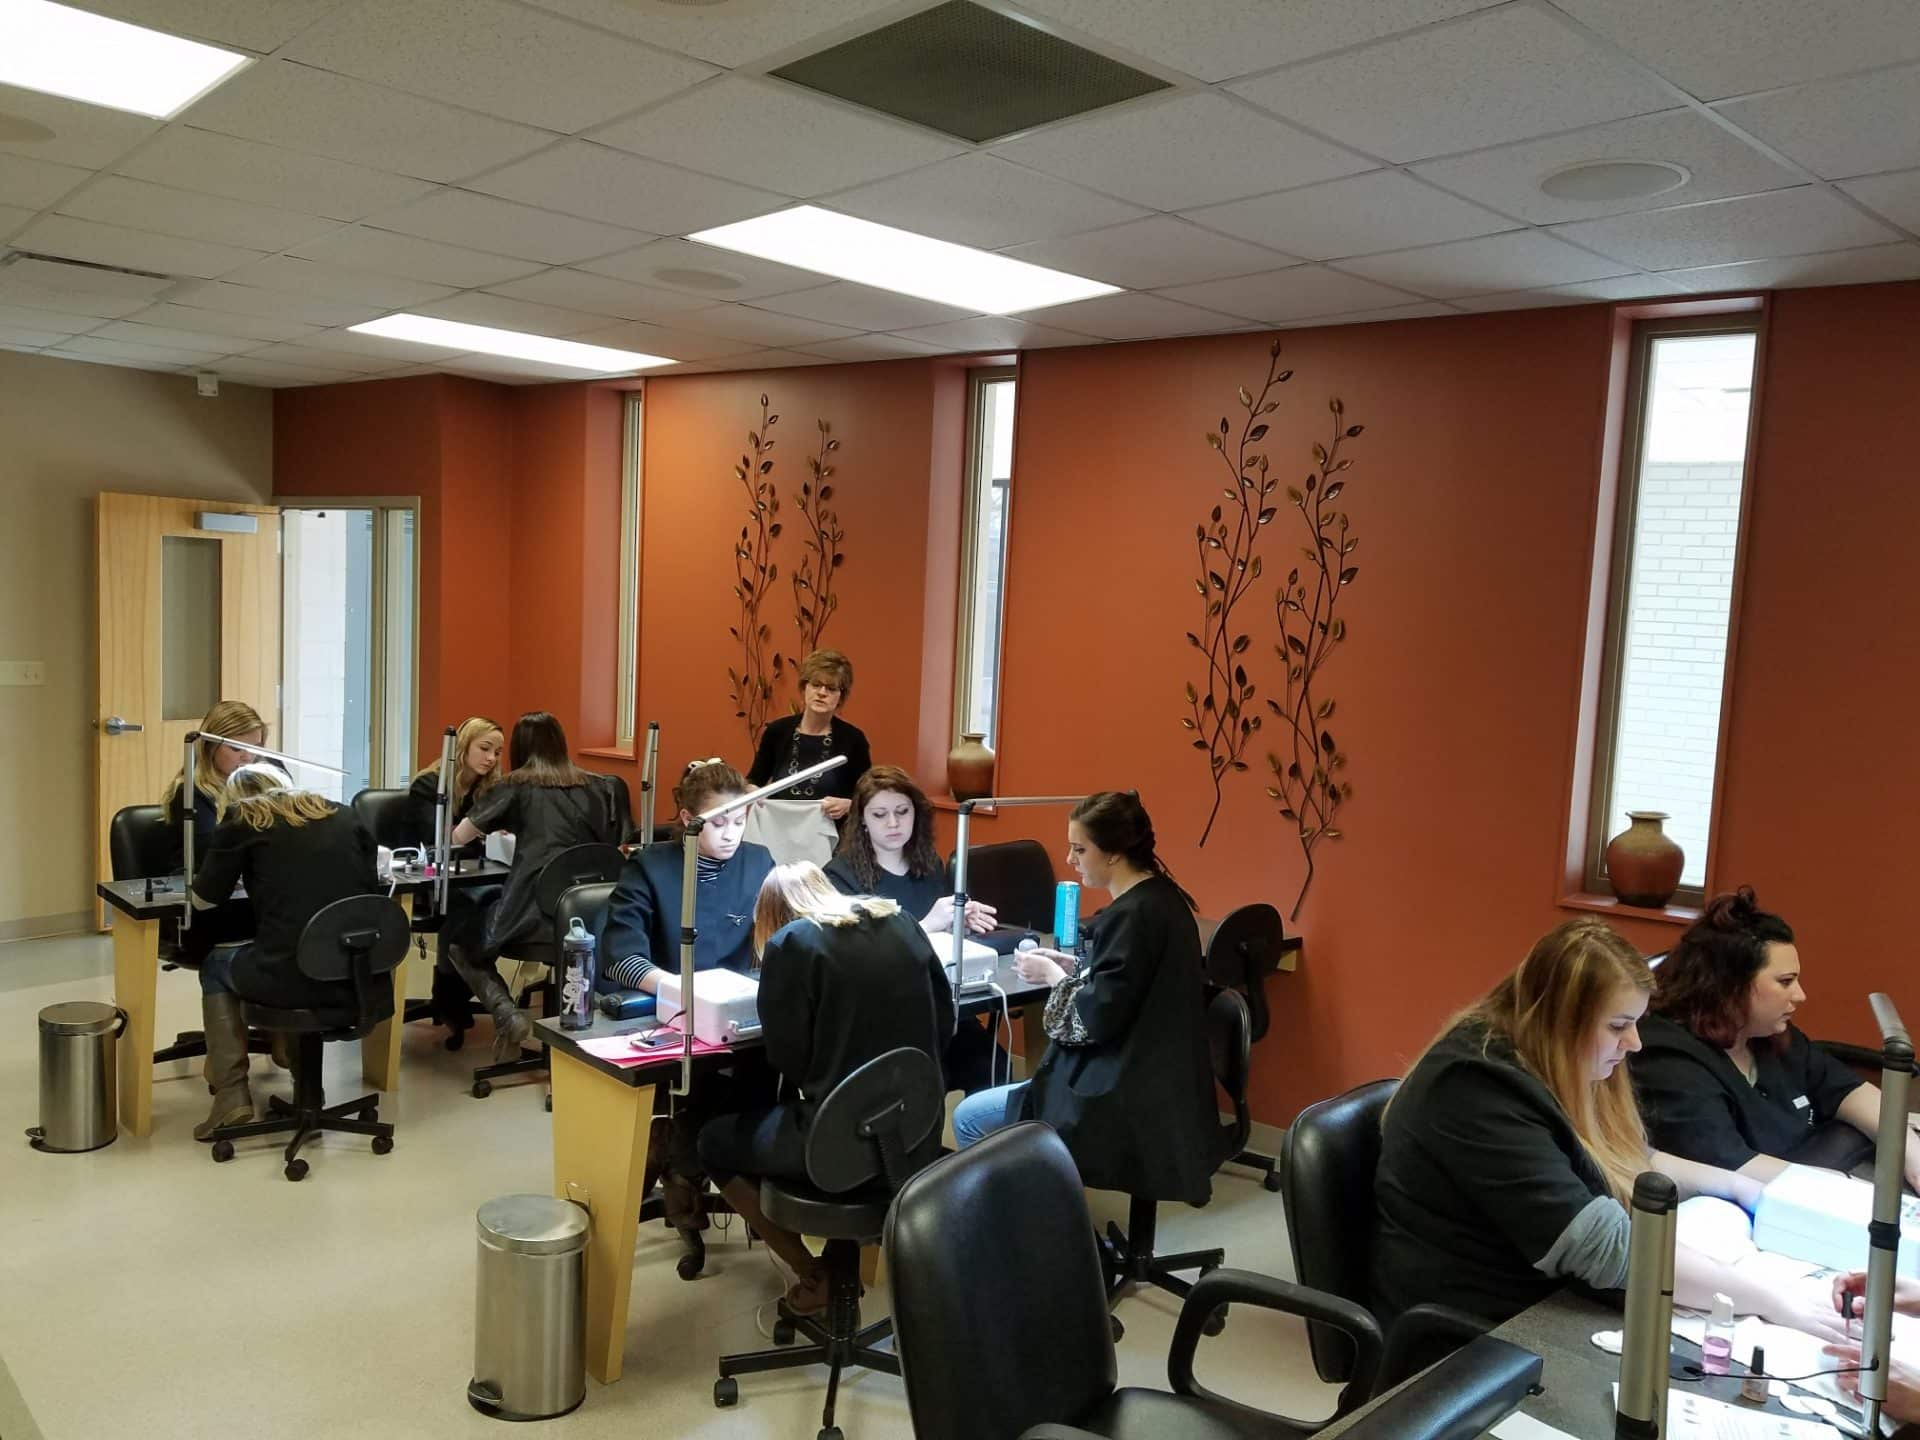 Cosmetology students learning nail procedures